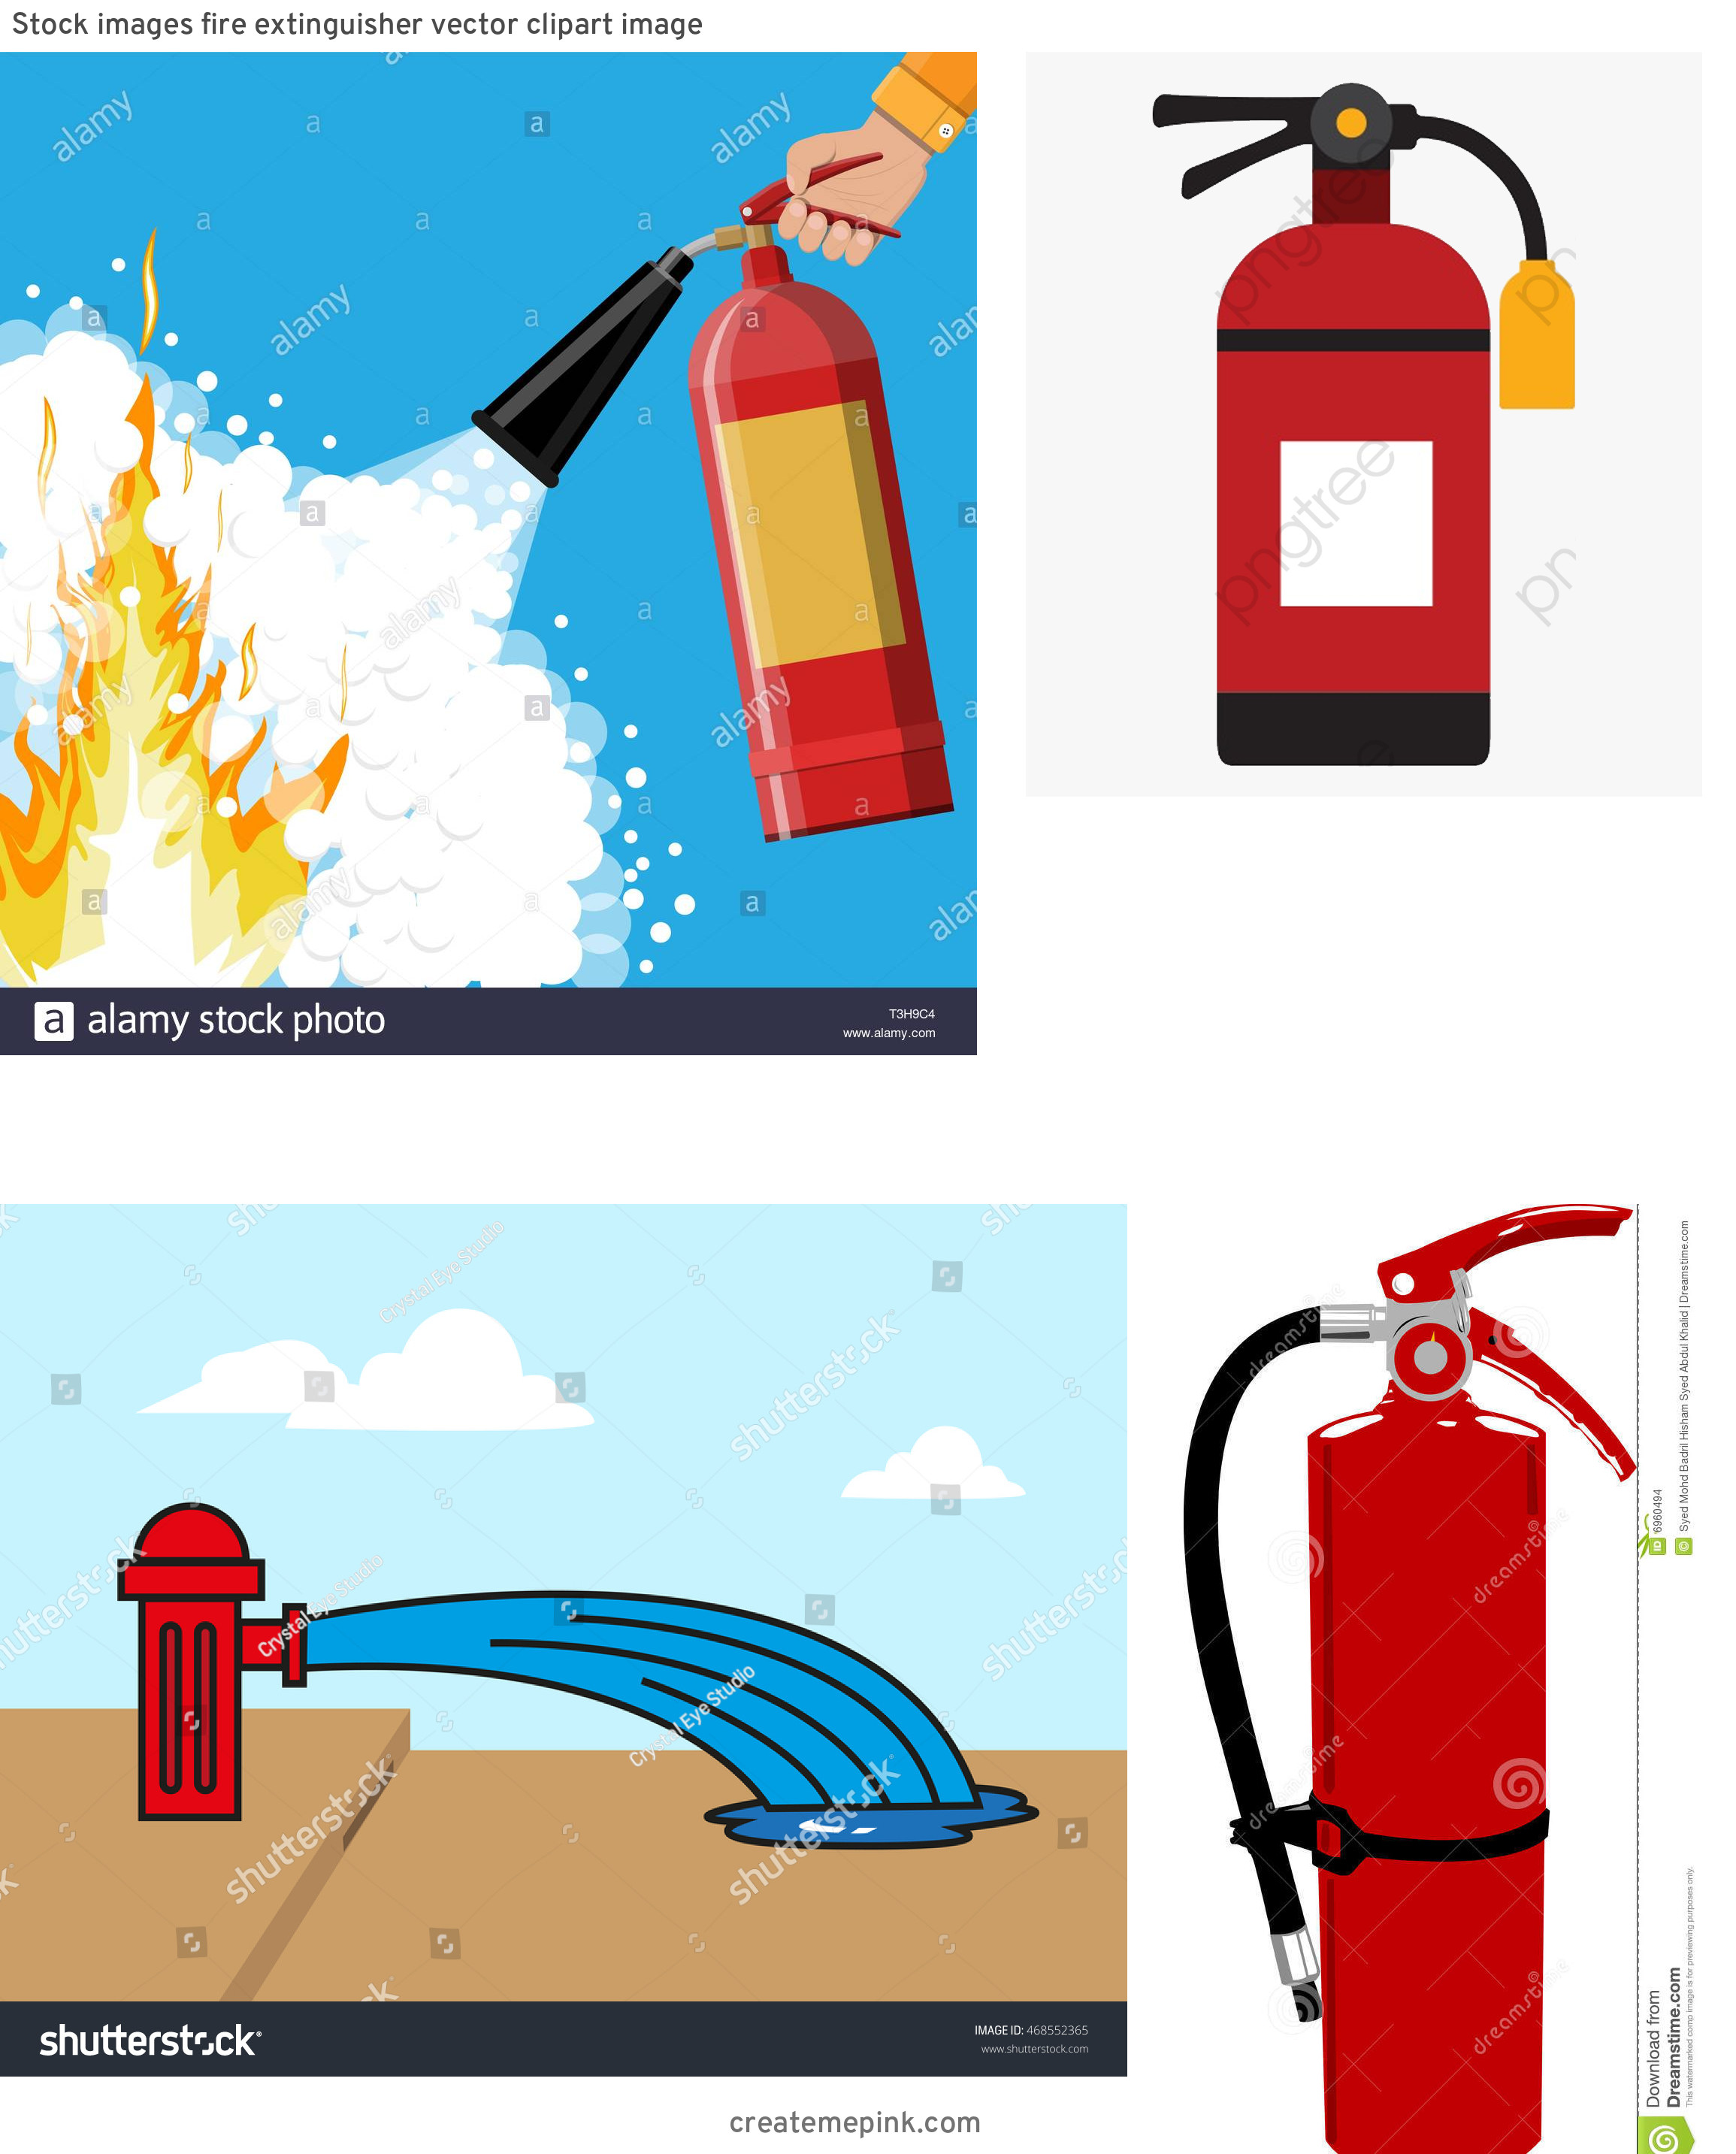 Fire Hydrant Vector Clip Art: Stock Images Fire Extinguisher Vector Clipart Image